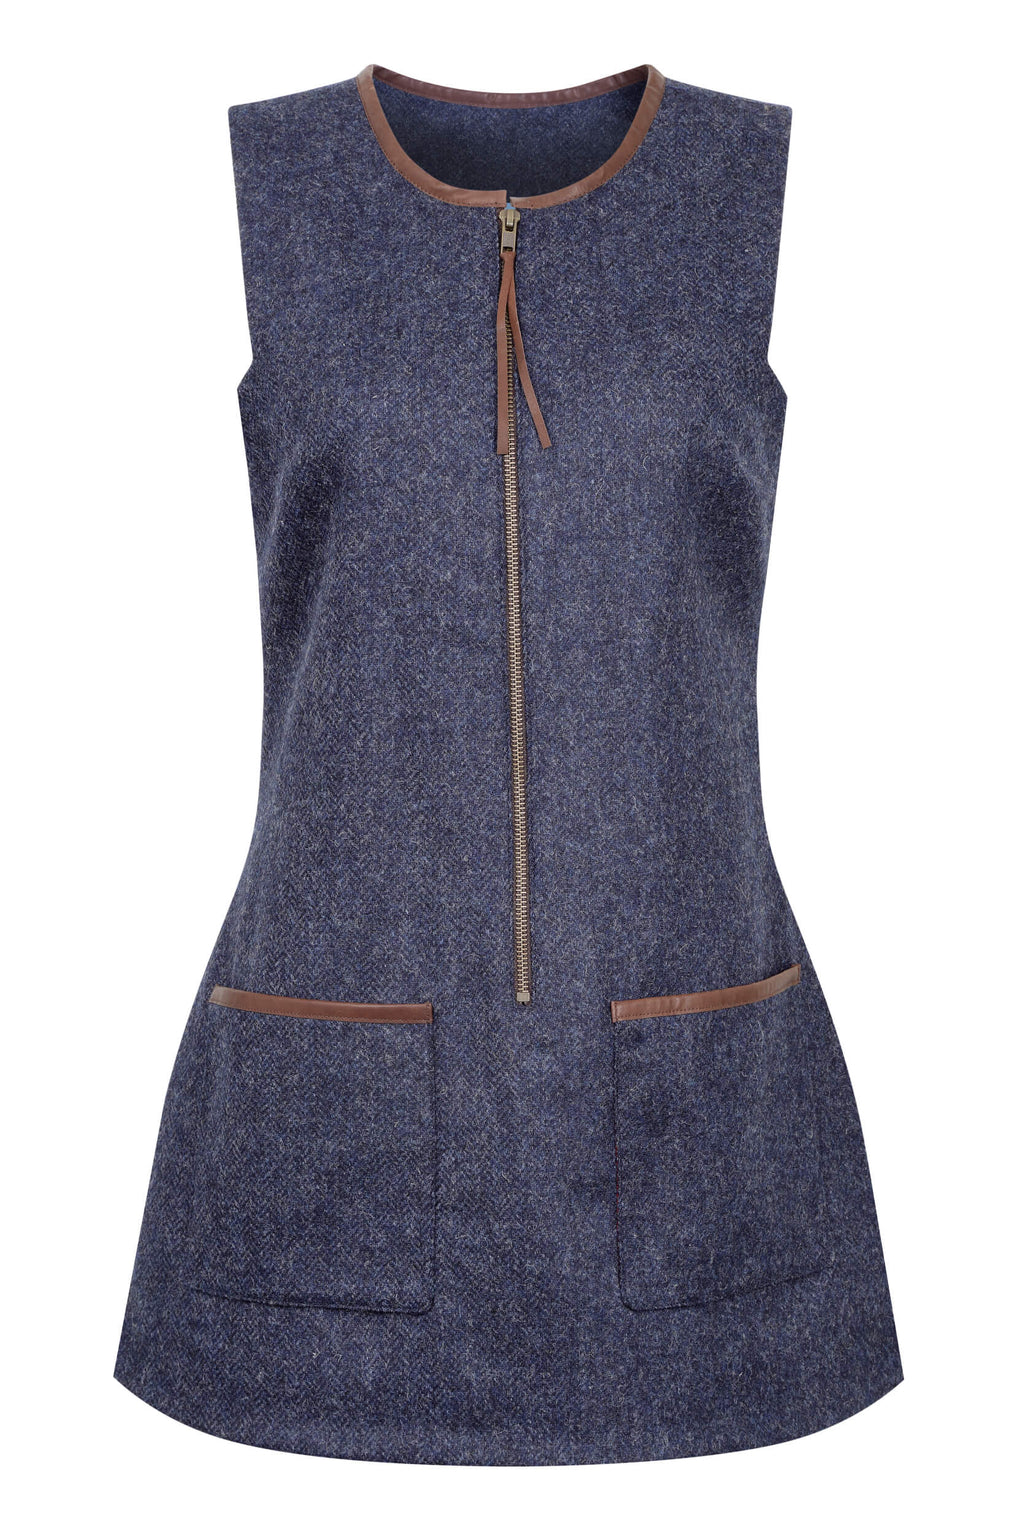 indigo-blue-tweed-tunic-dress